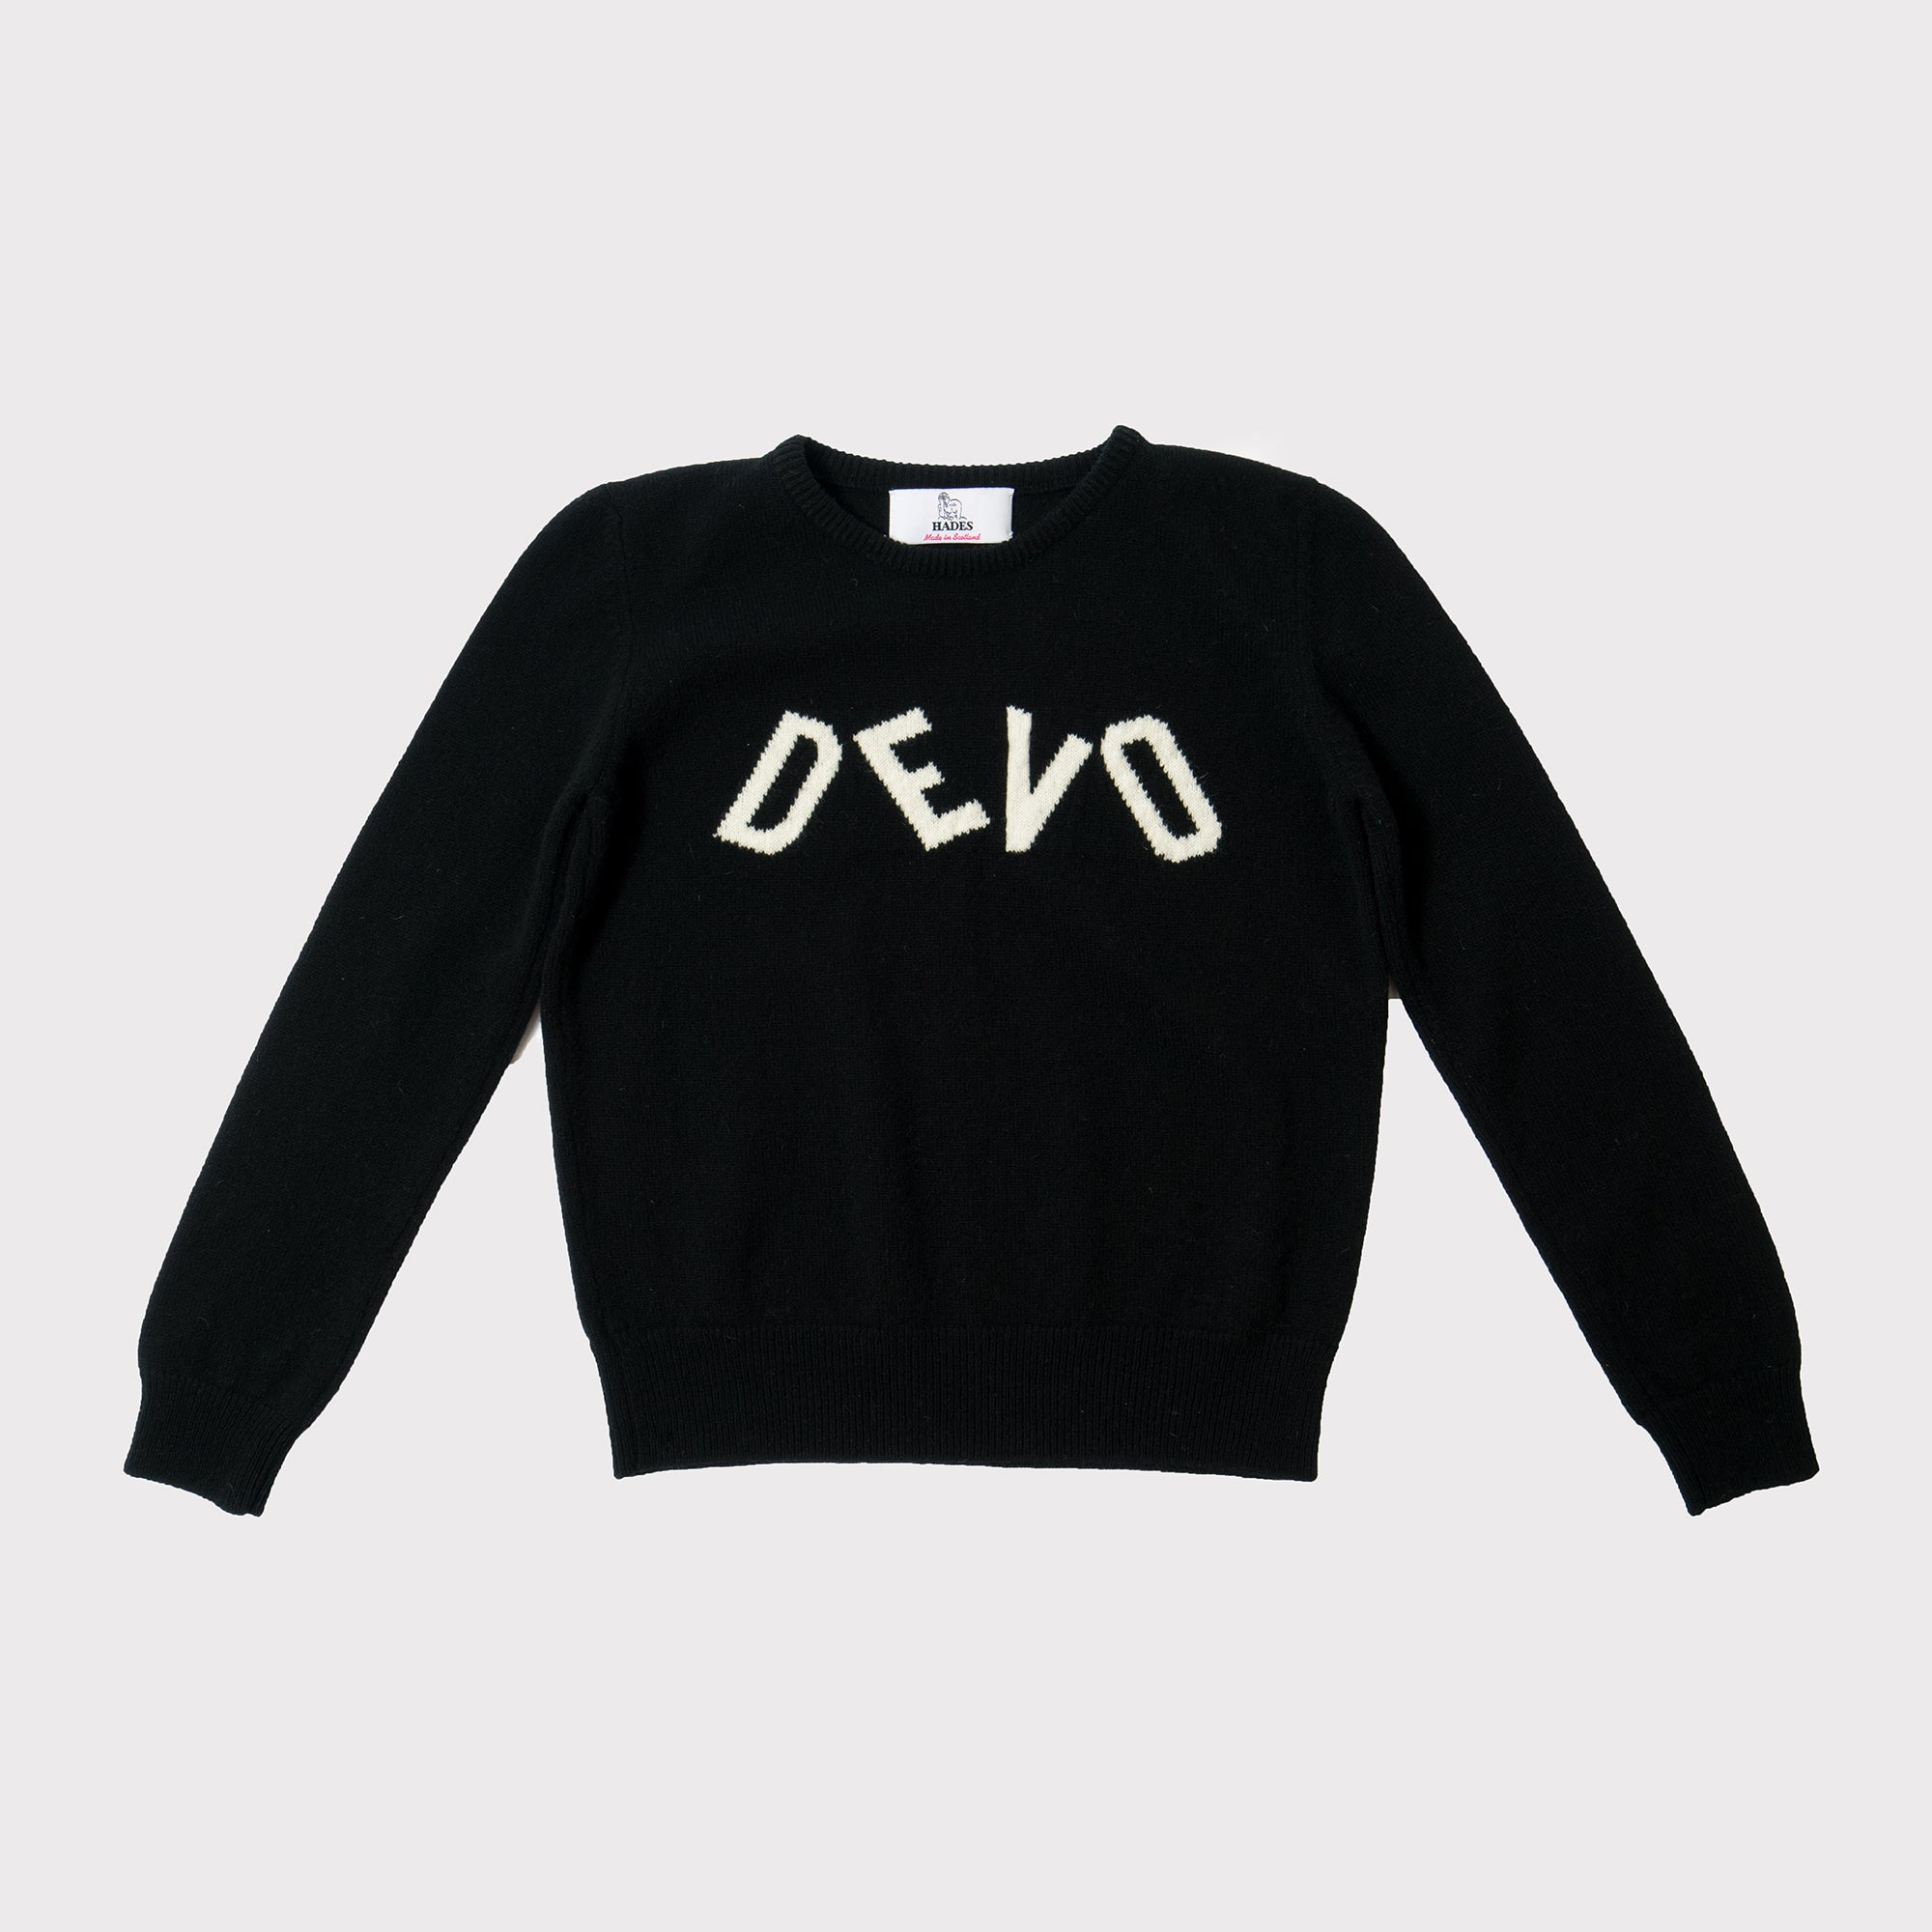 Devo | Black & White | Women's